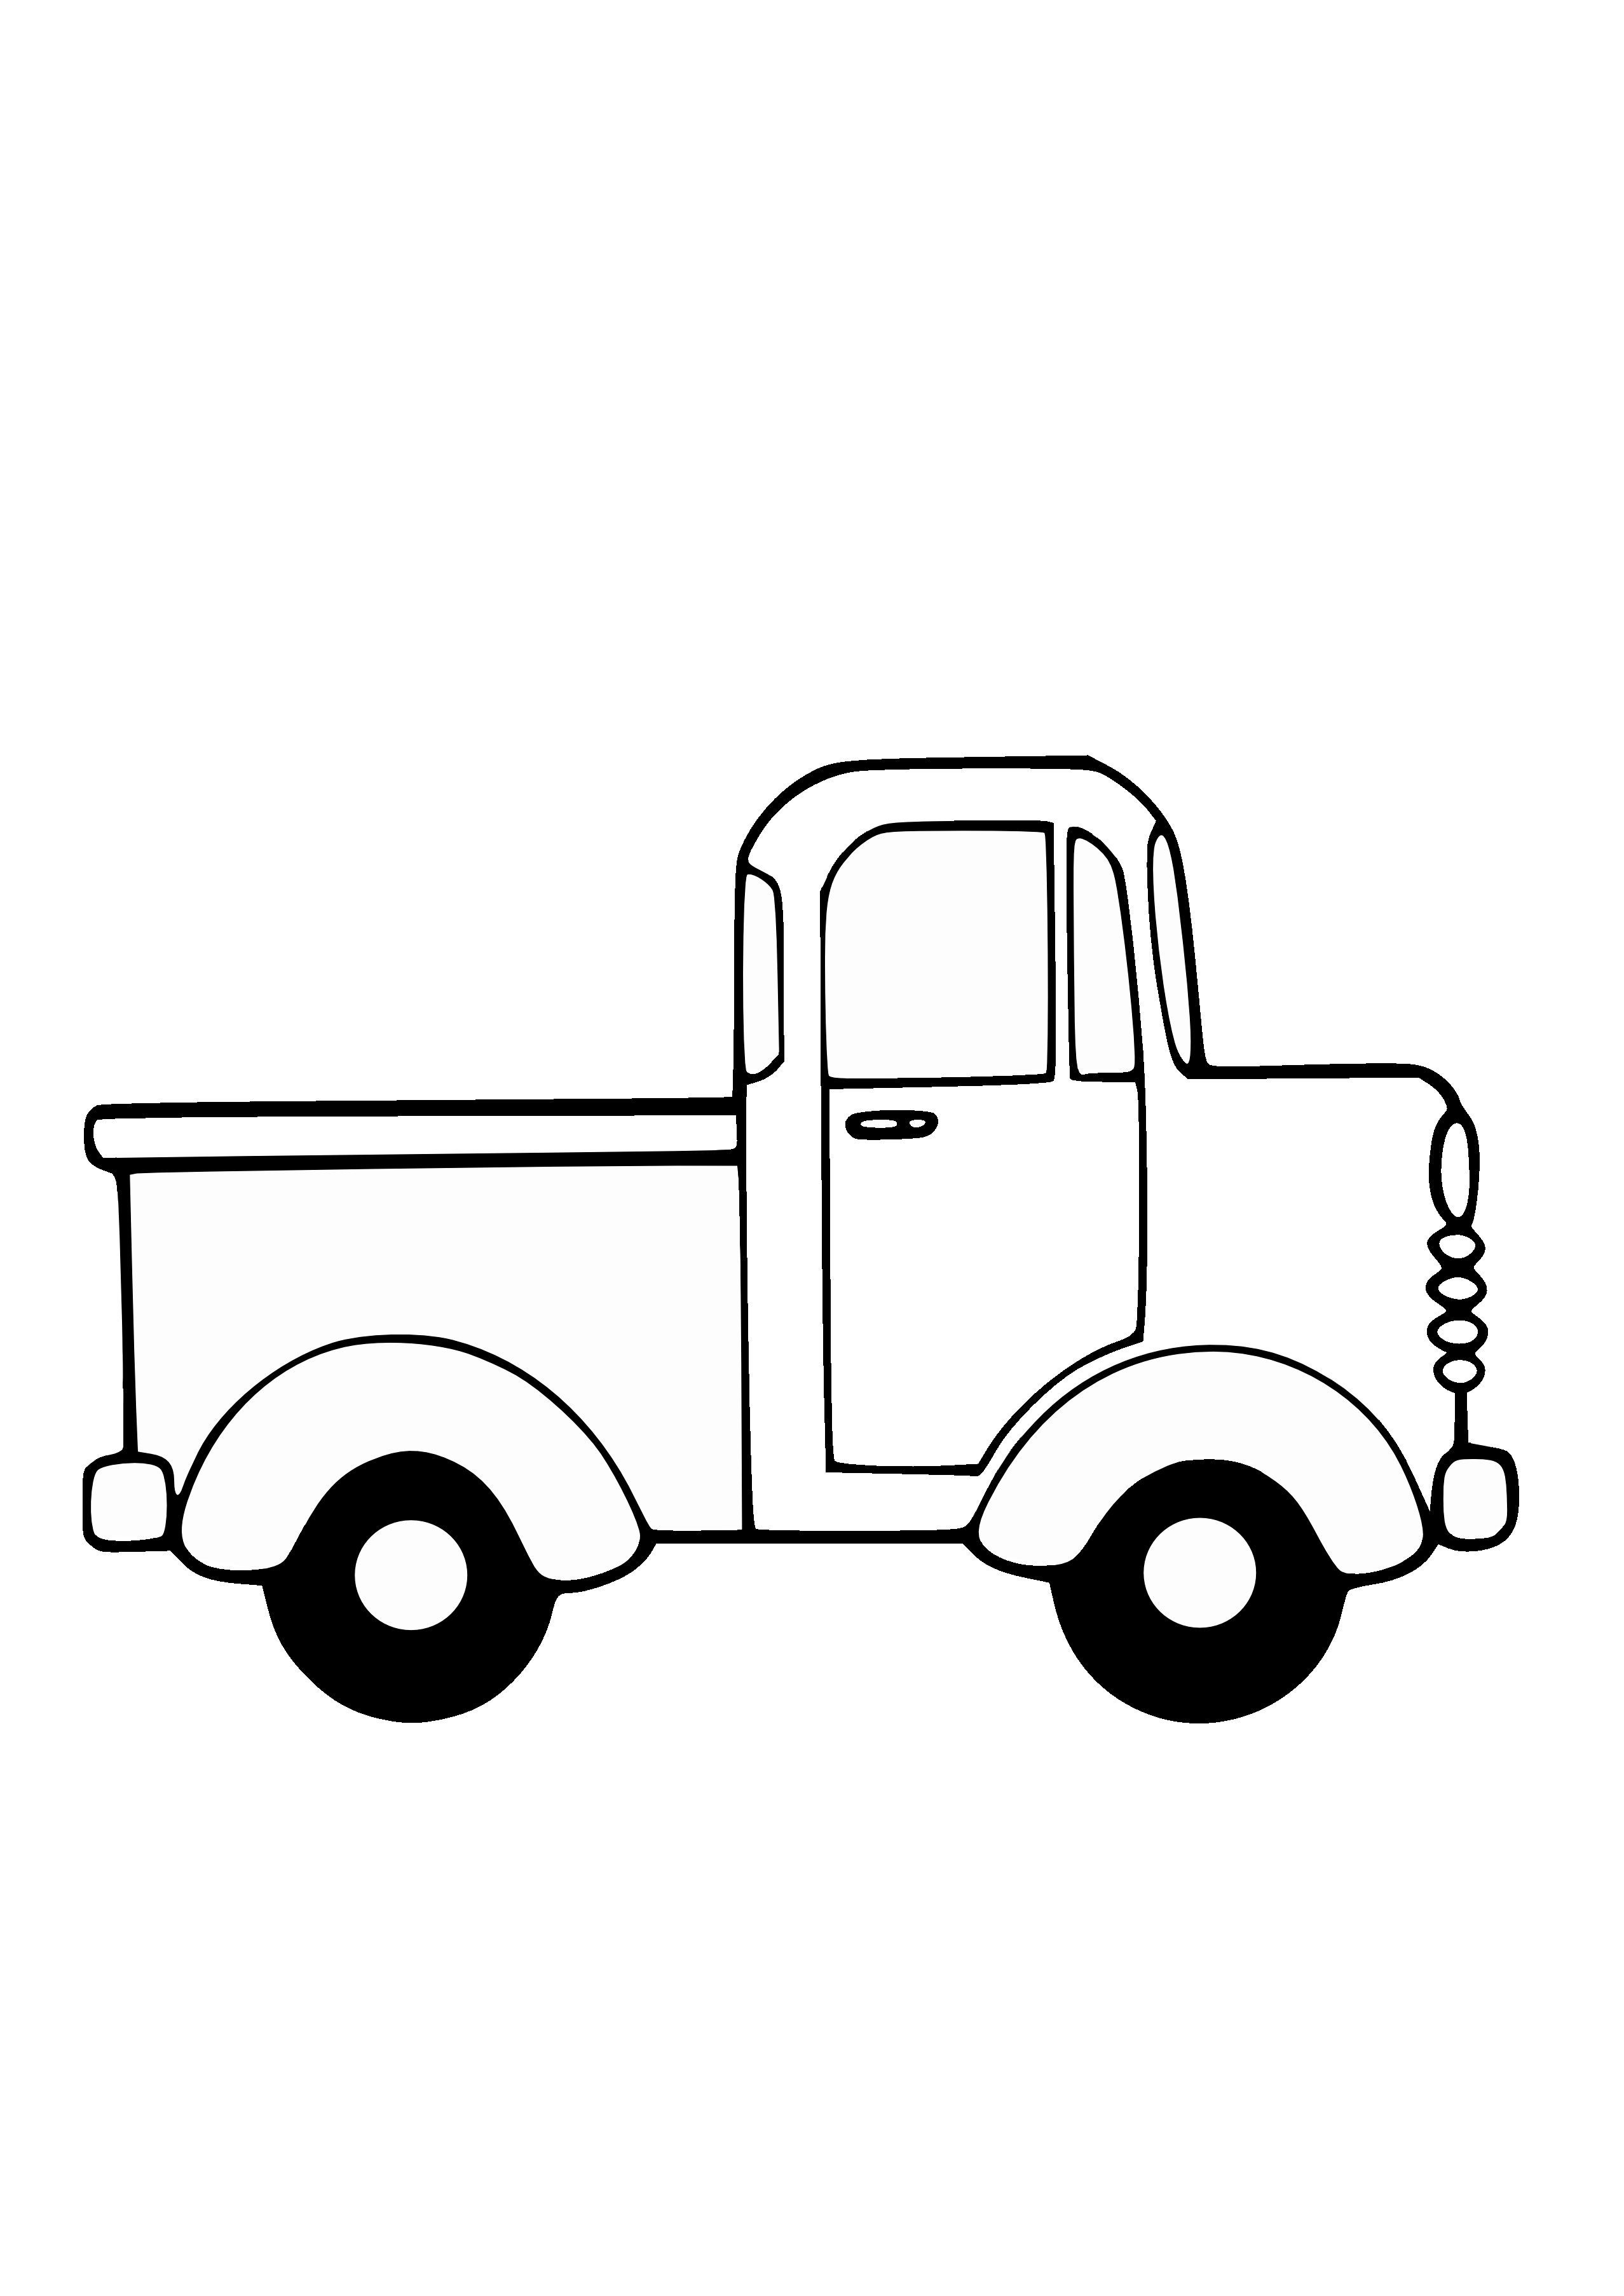 Truck Clipart Black And White Free Truck Coloring Pages Clipart Black And White Coloring Pages